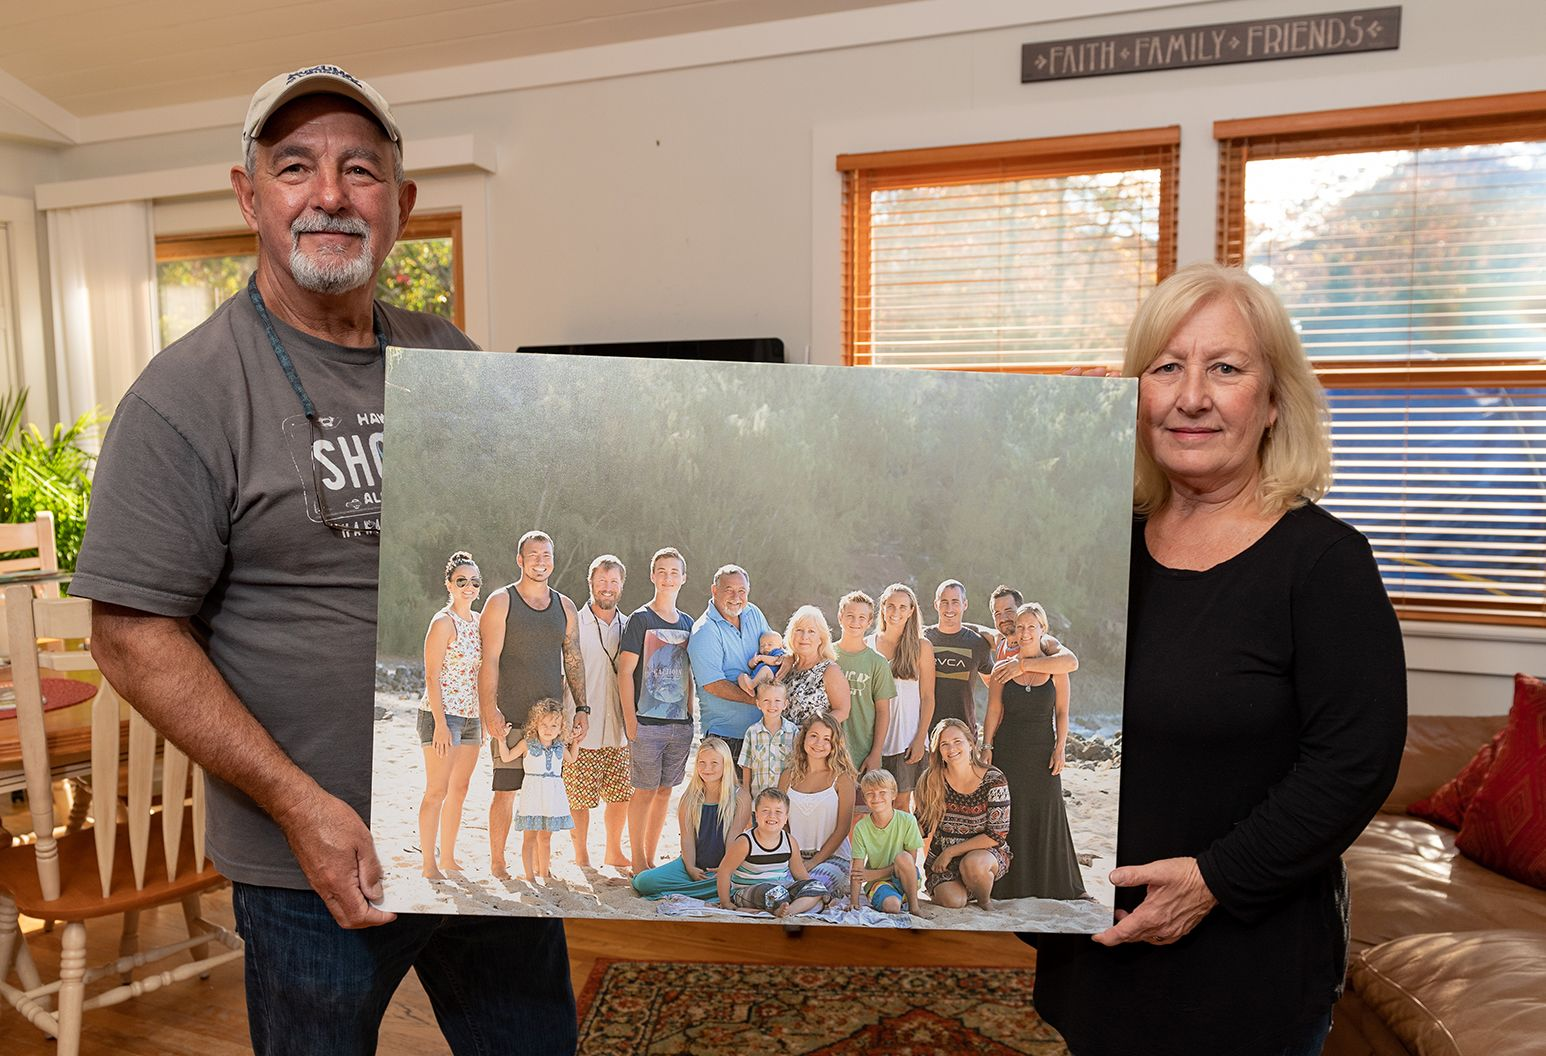 A middle-aged couple stands in living room and holds up a giant photo of their kids and grandkids.